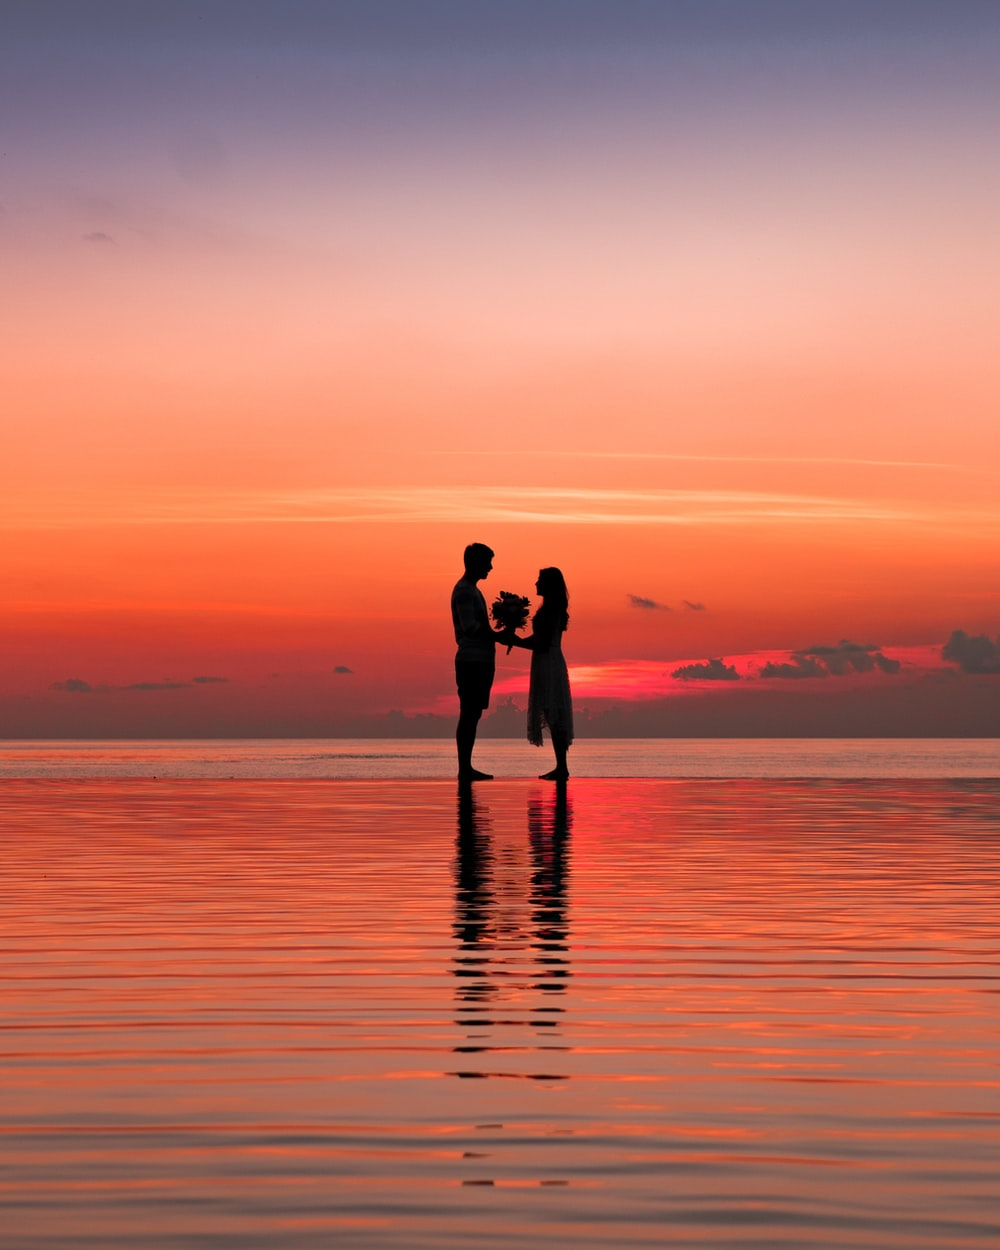 man and woman silhouette against golden hour photo free human image on unsplash woman silhouette against golden hour